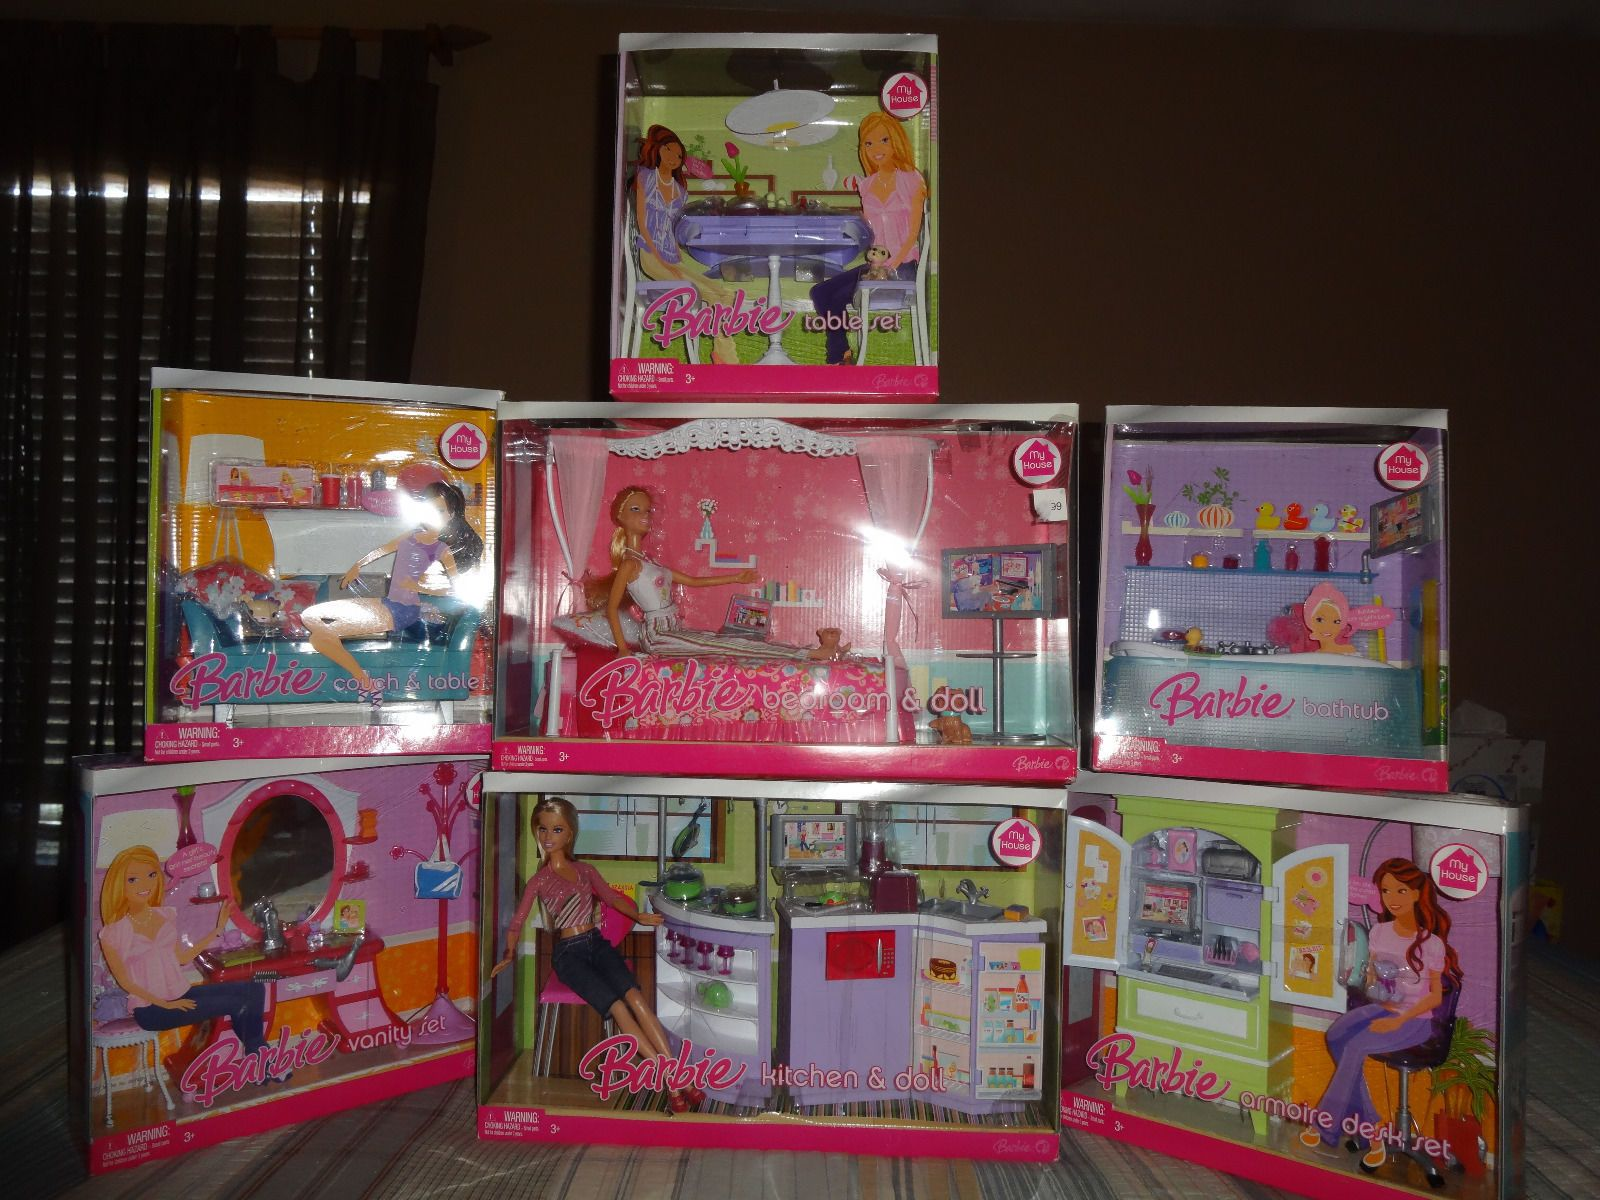 Barbie Bedroom In A Box: Barbie My House Playsets By Mattel, C. 2006